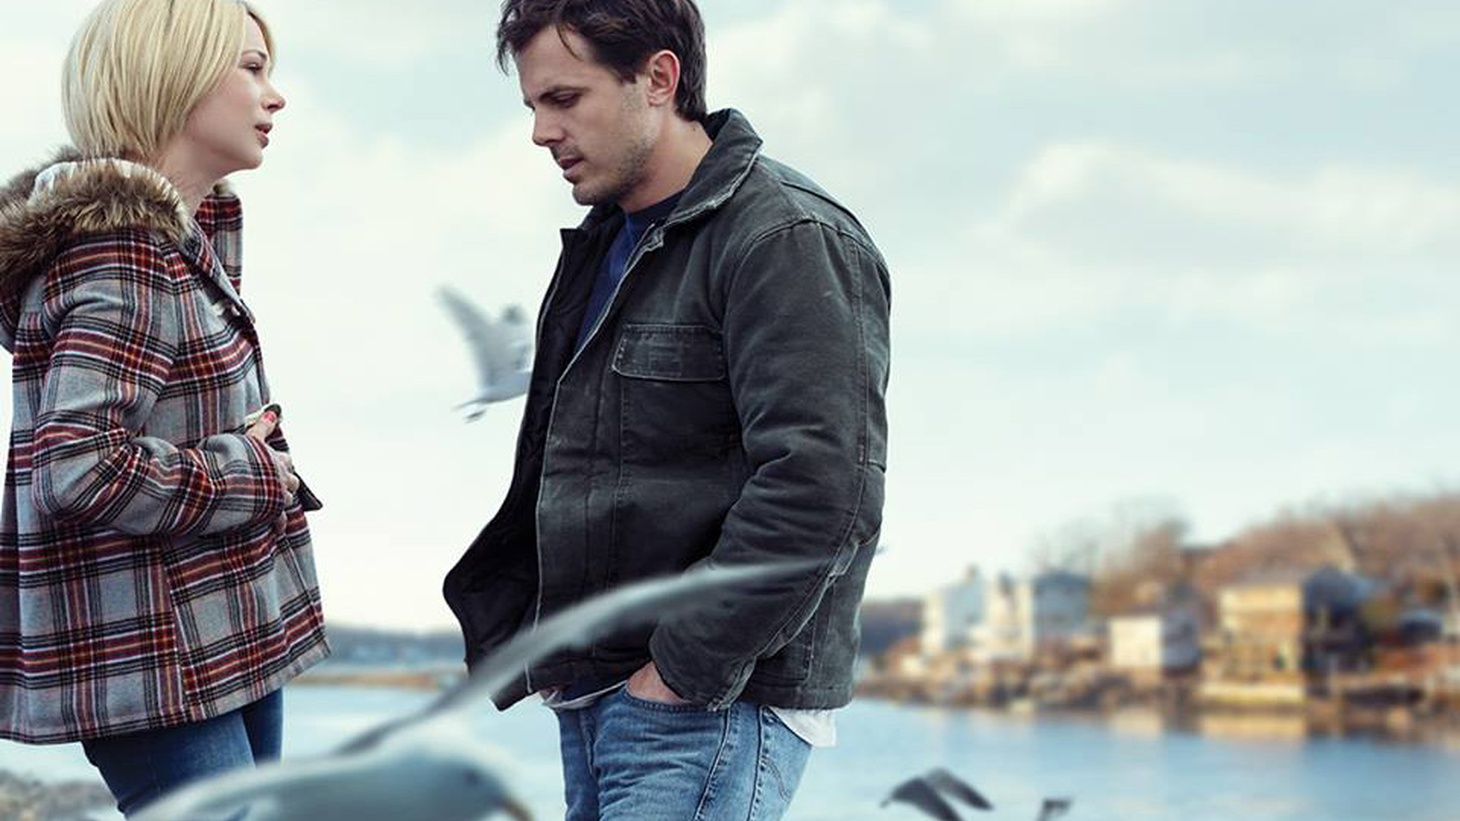 EXCLUSIVE PODCAST: Elvis Mitchell in conversation with Manchester by the Sea star Casey Affleck and producer Matt Damon, recorded live at the Landmark Theater.